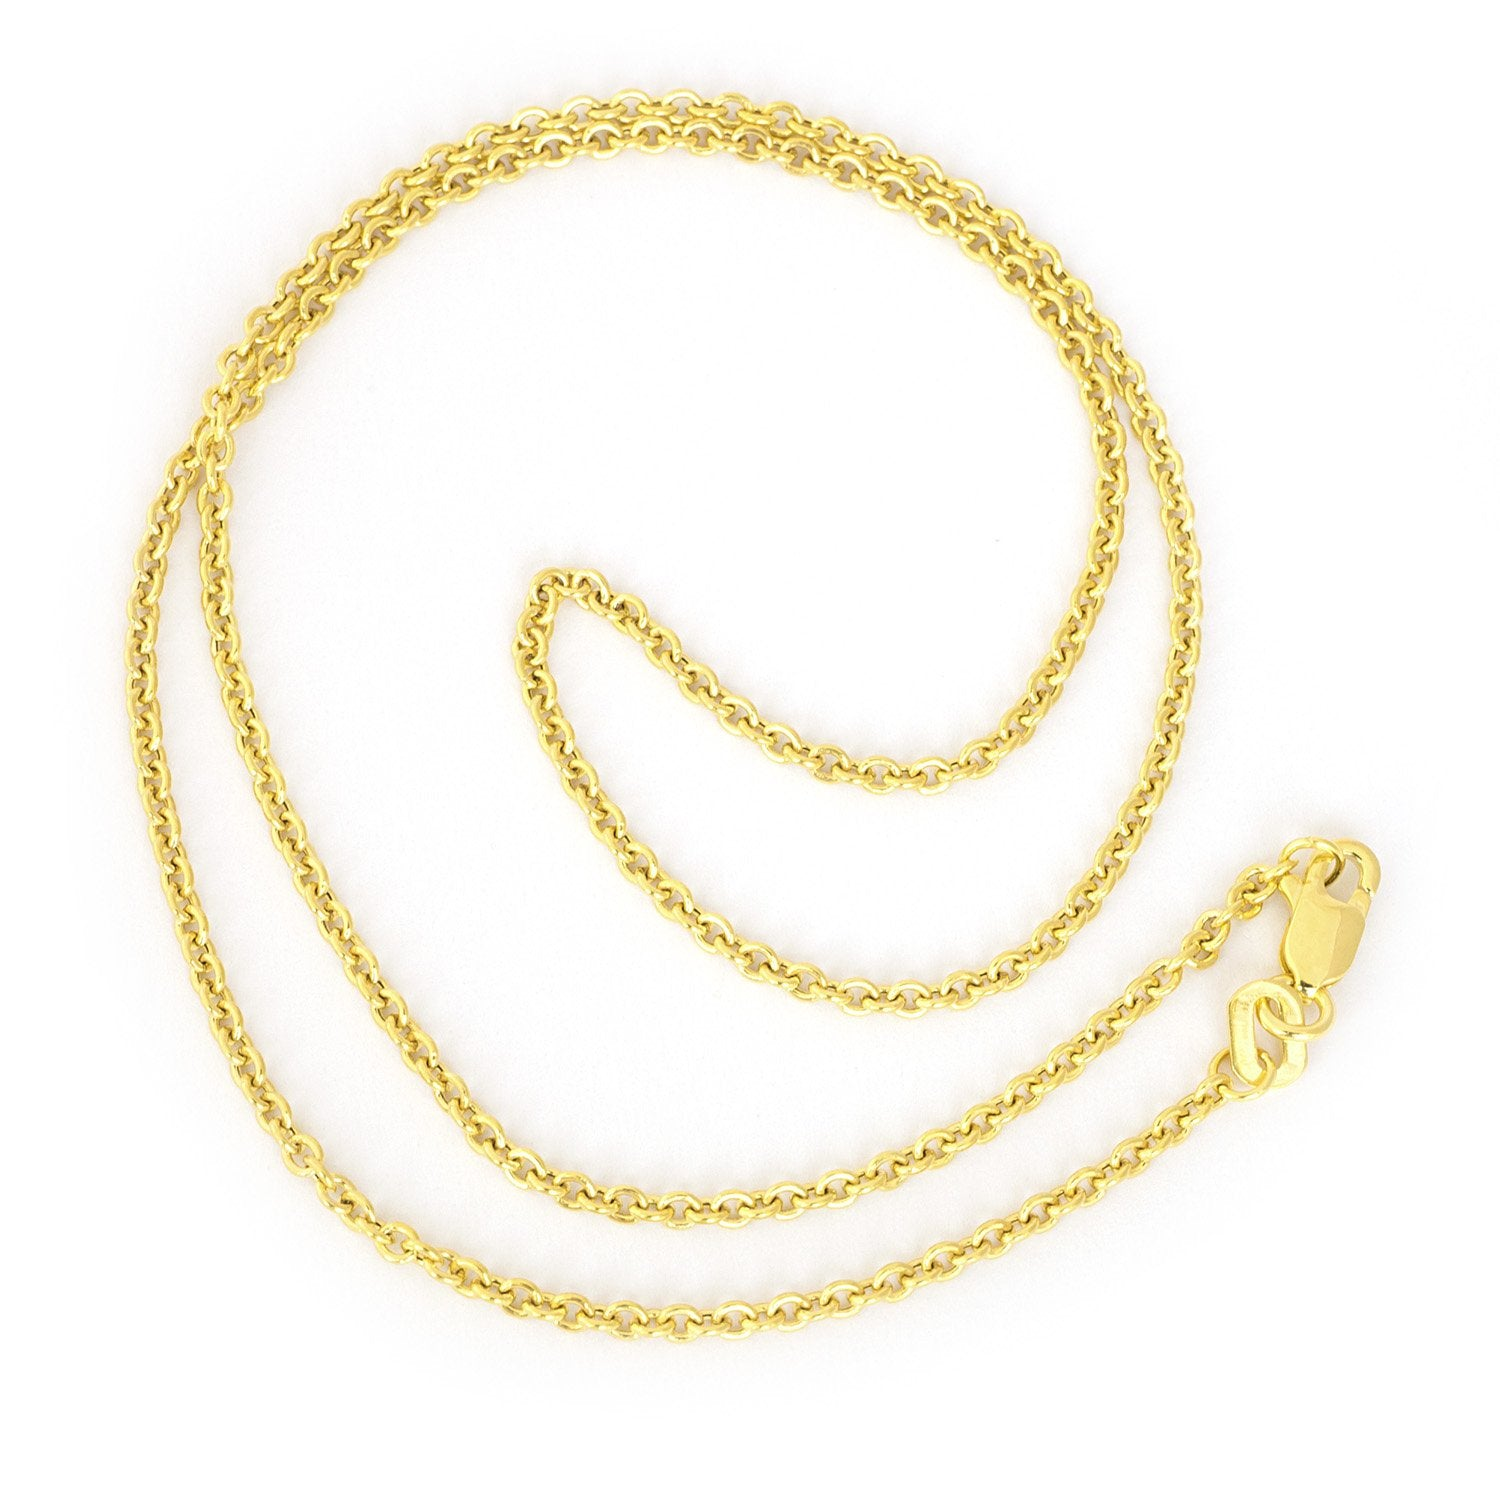 1.9mm Rhodium Plated Cable Pendant Chain